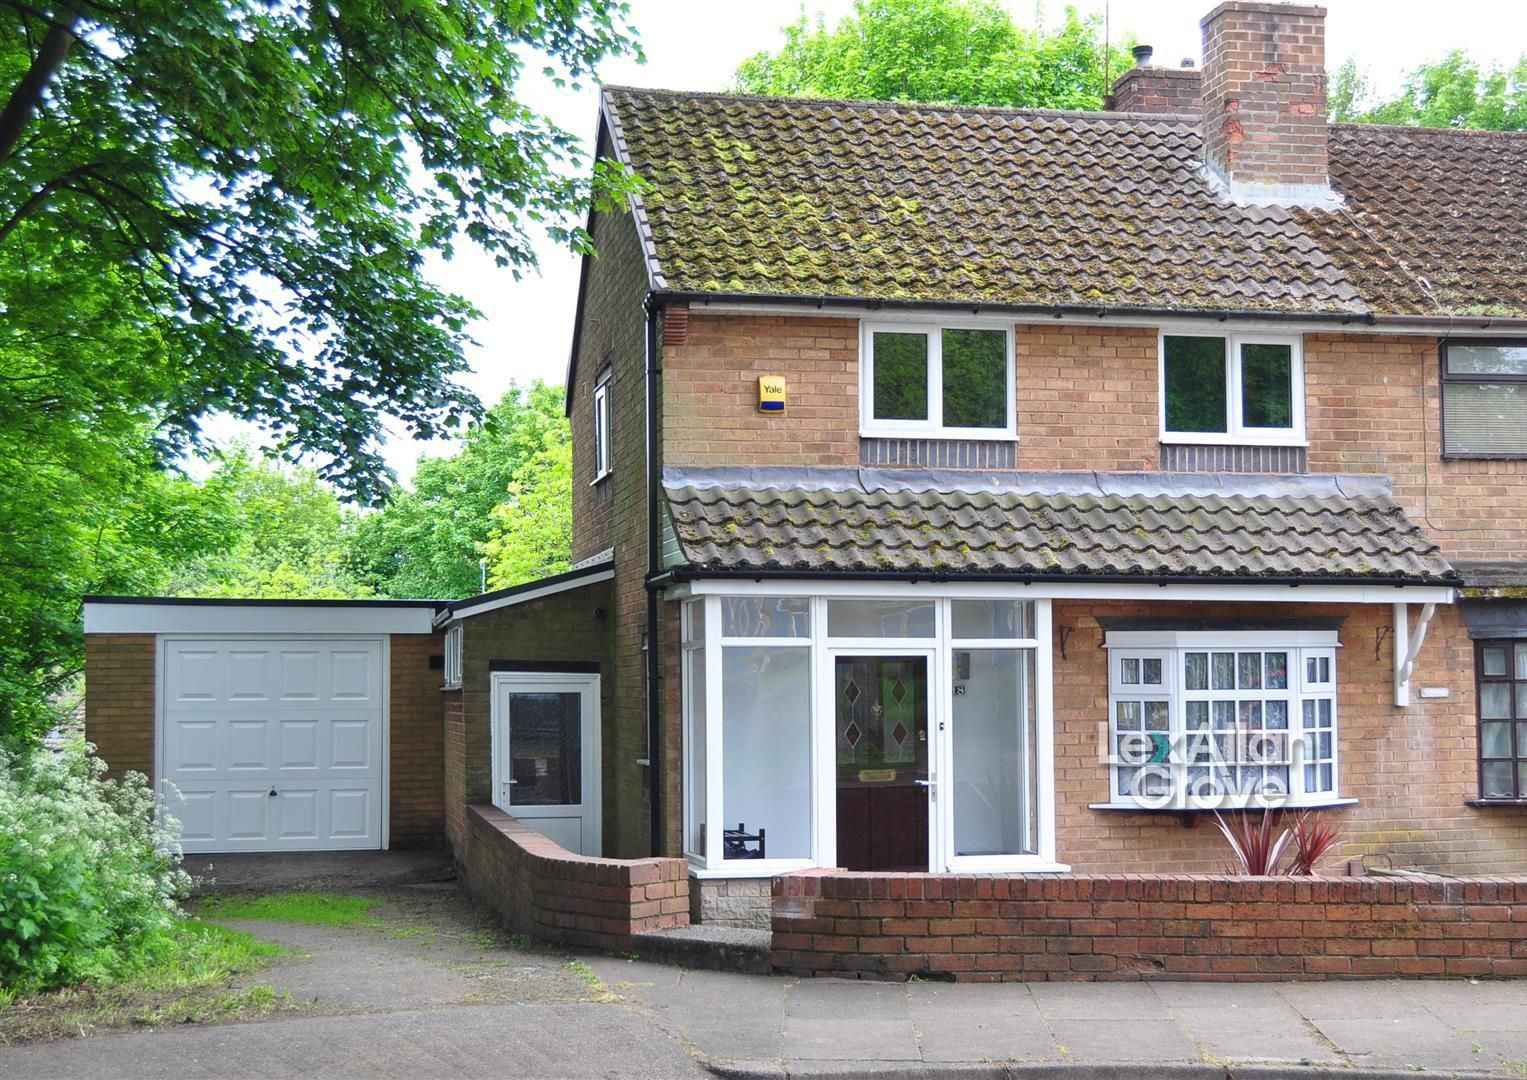 2 bed semi-detached for sale, B64